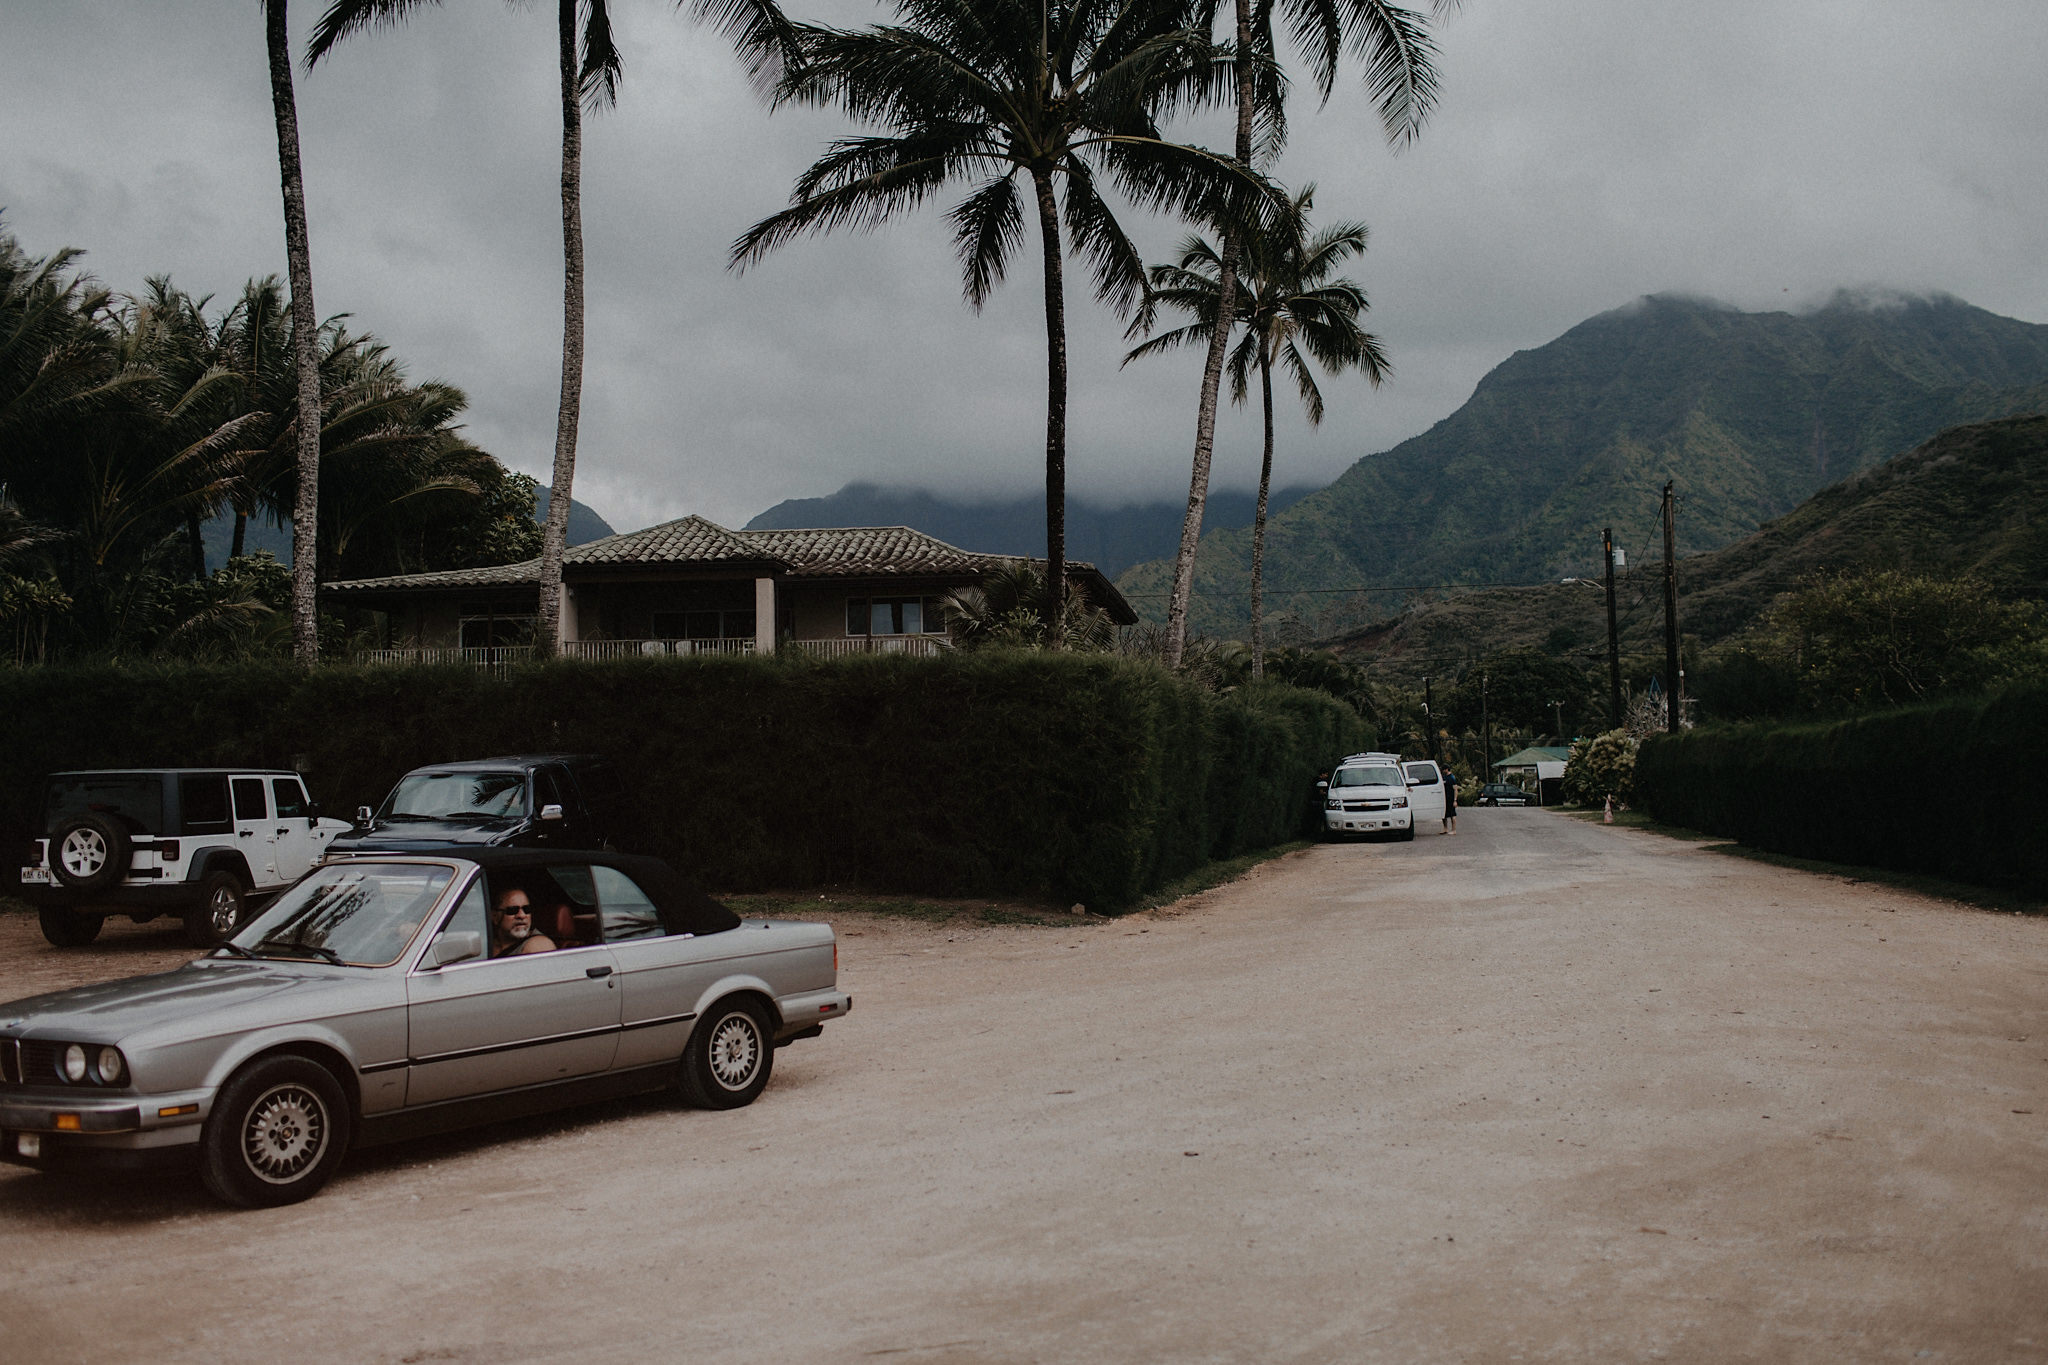 hawaii elopement dirt road palm trees photo